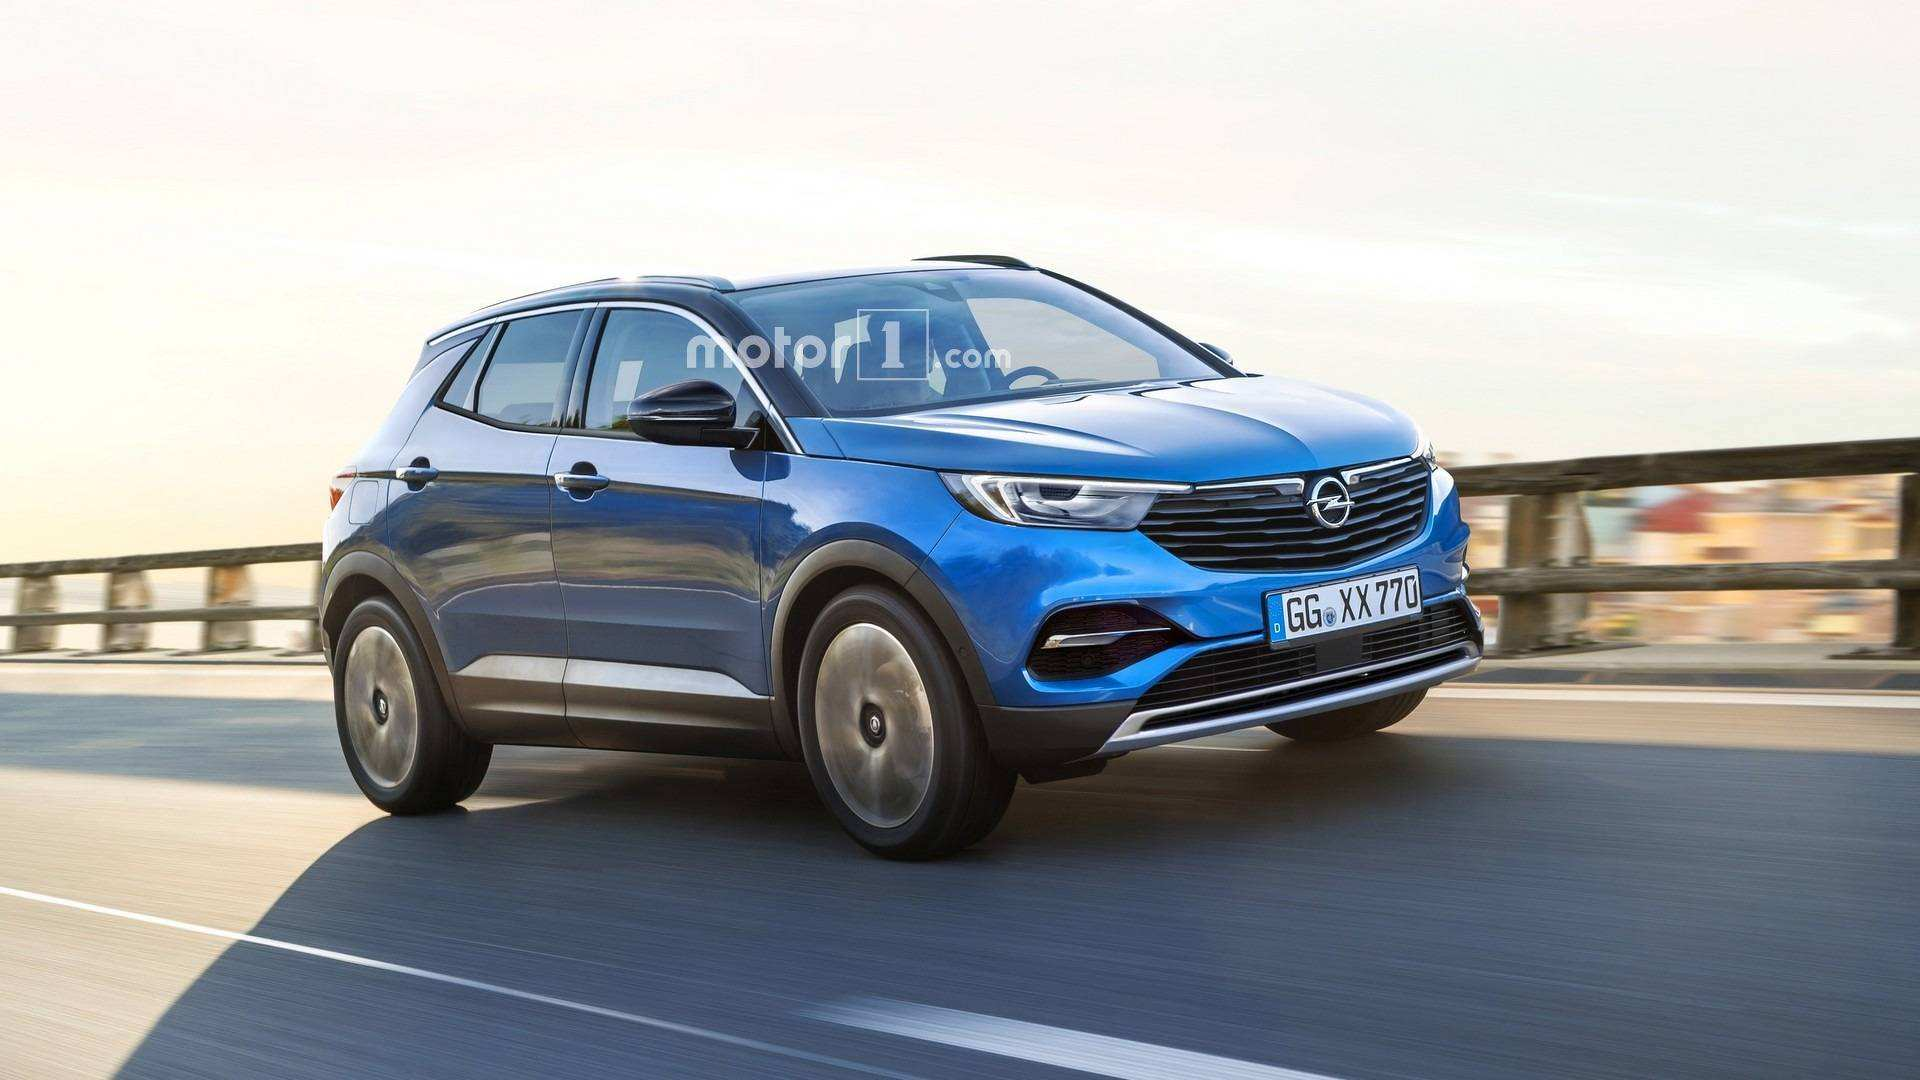 33 Best Opel Jeep 2020 Research New